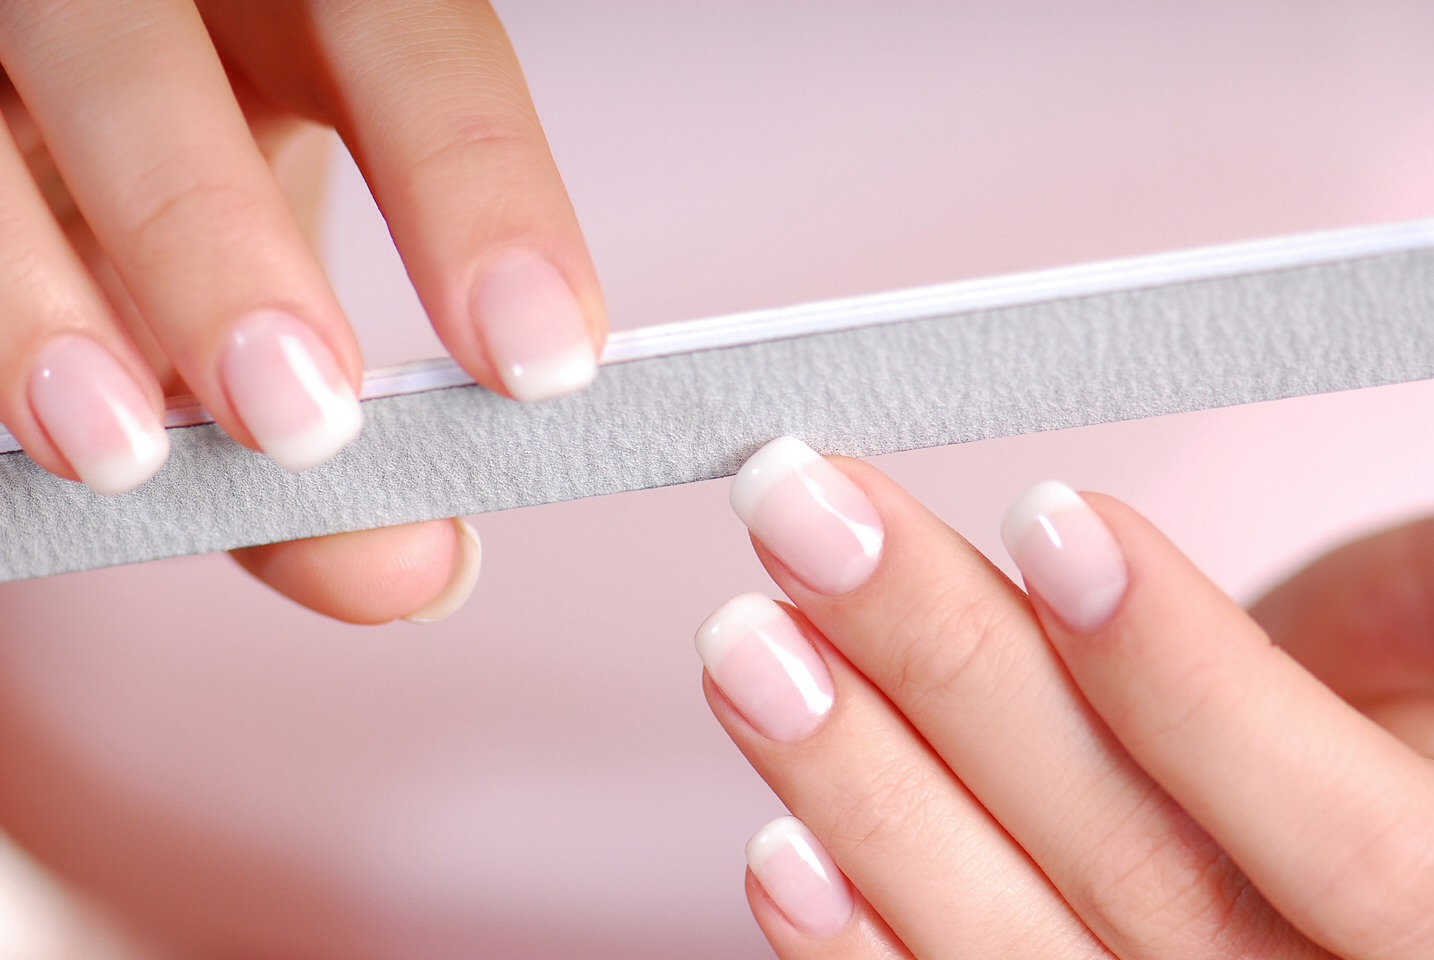 Simple Nail Strengthening Tips - for home, your health, manicures that help